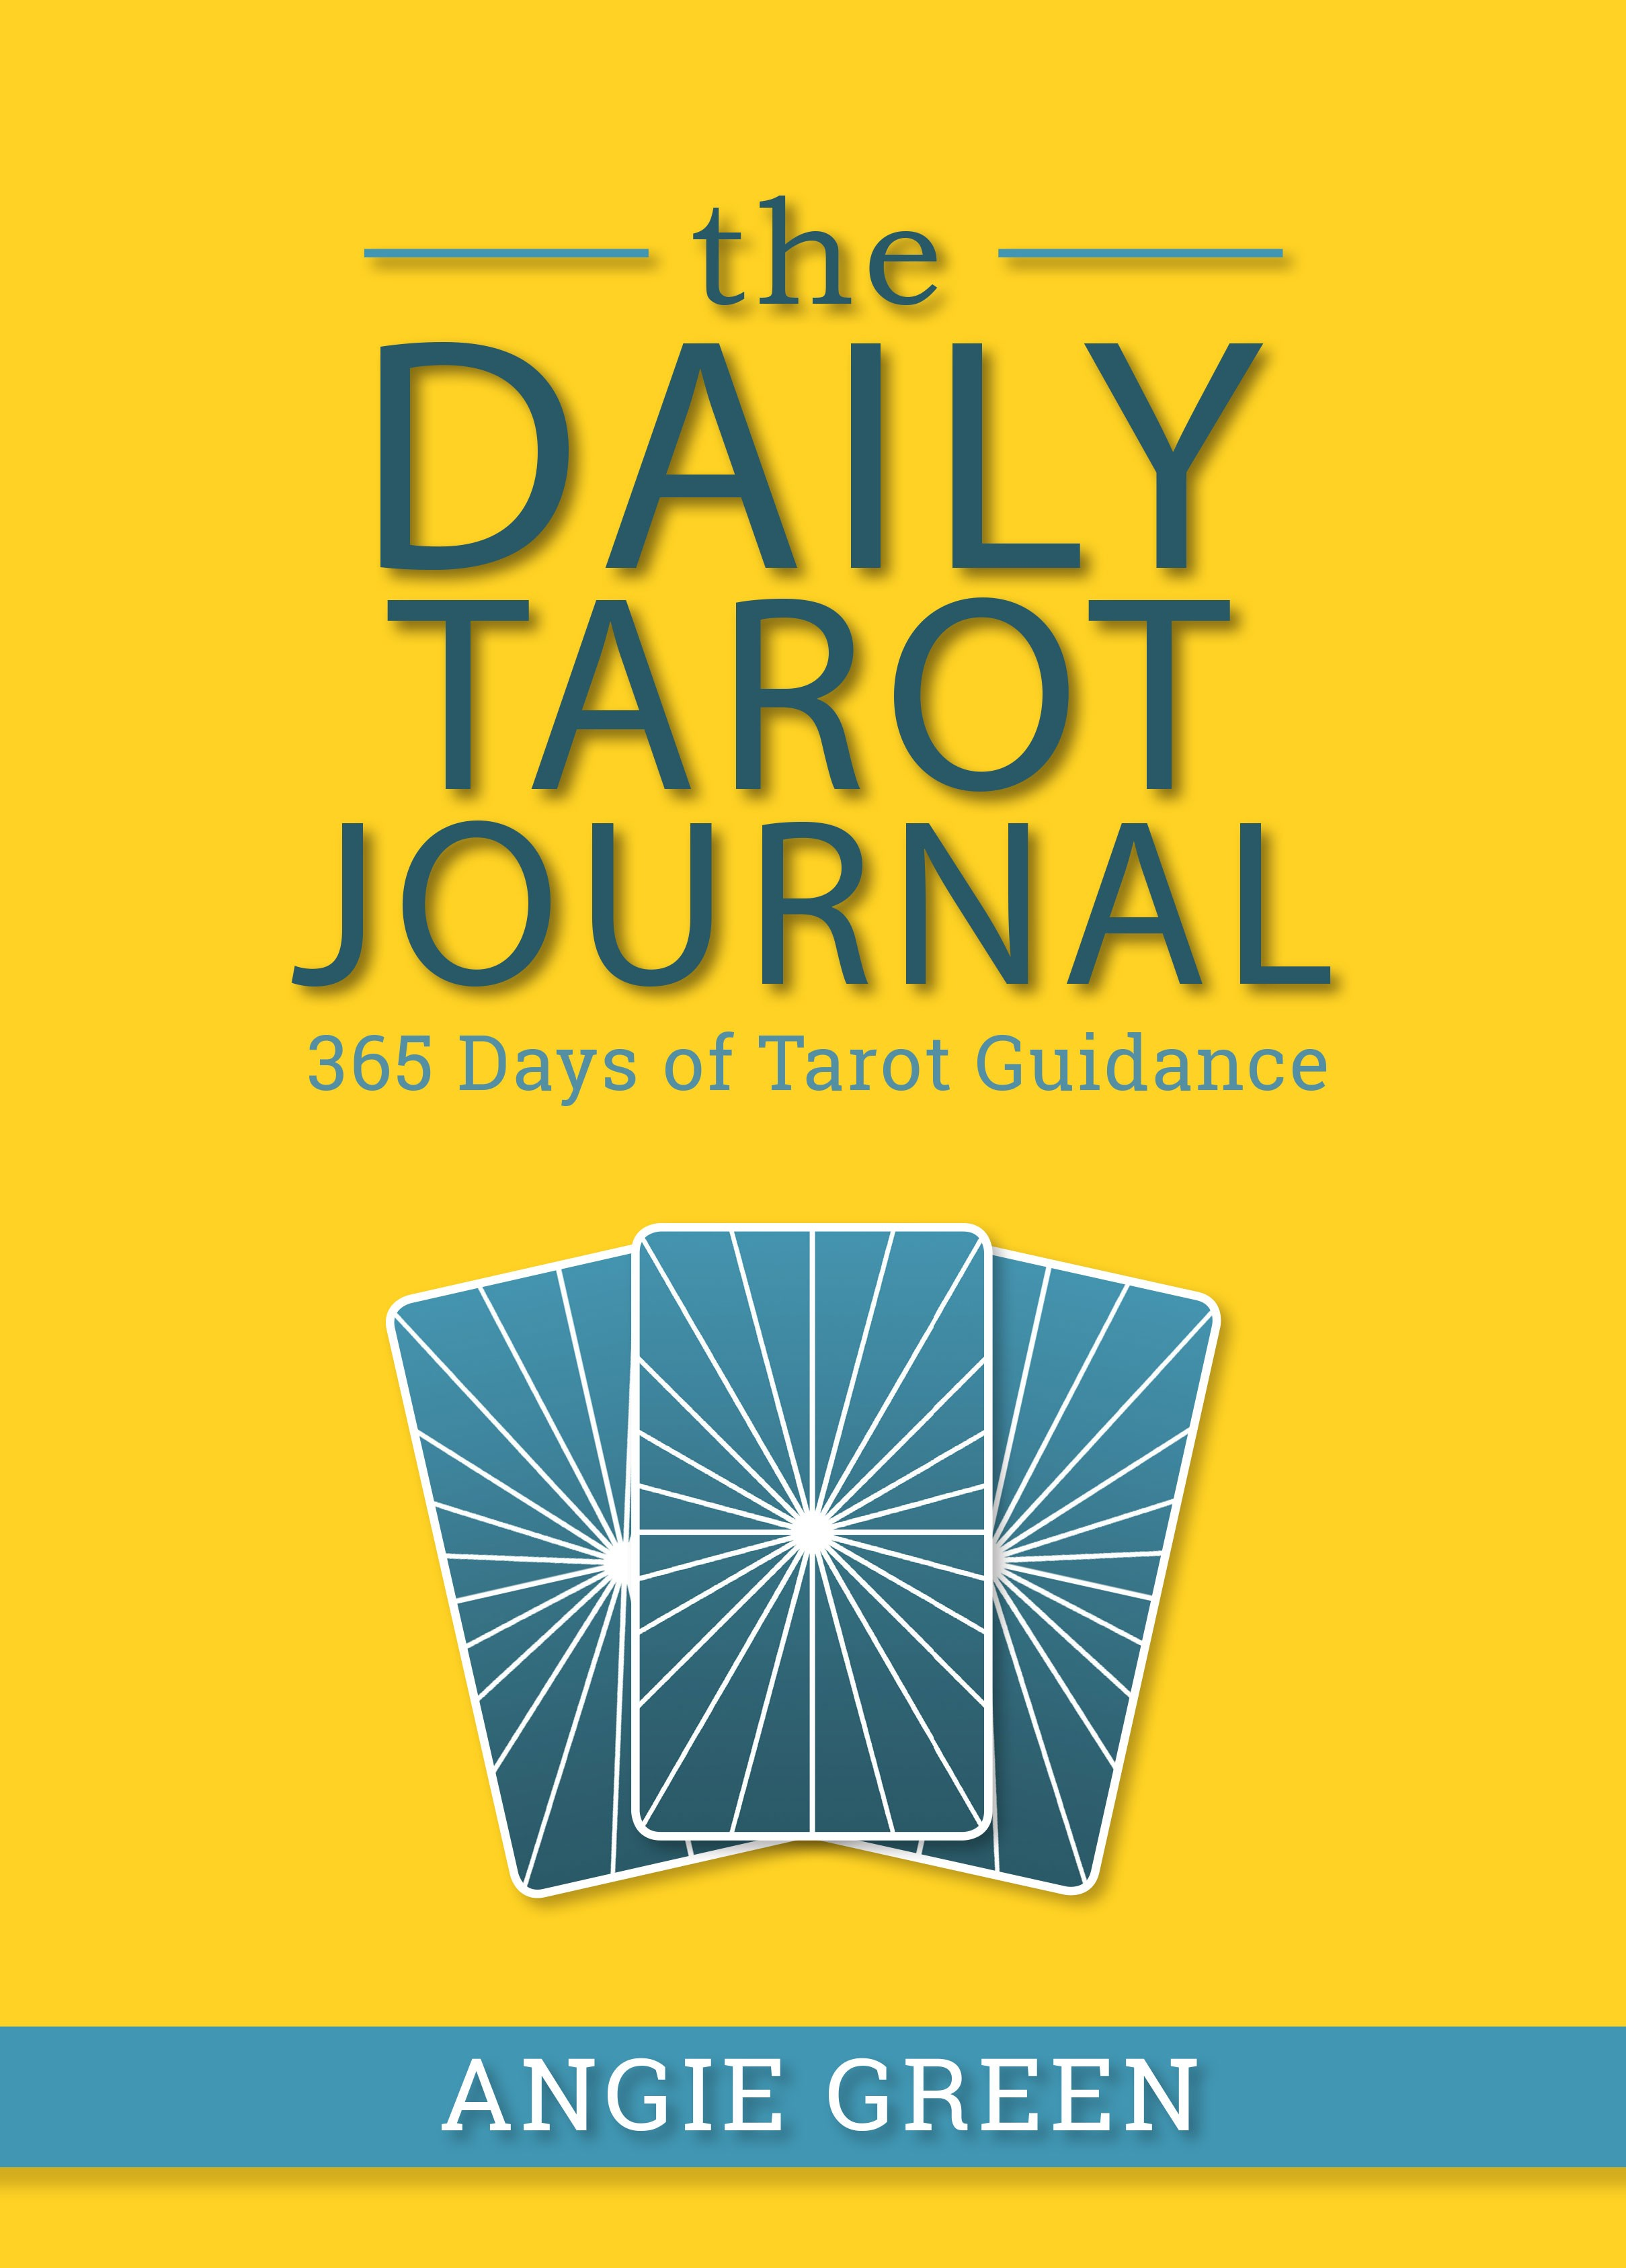 The Daily Tarot Journal is your personal guide through the next 365 days of tarot exploration and learning. With this journal (and the companion book), you will discover and record creative, simple, and clear guidance from your tarot cards, every single day. Get this journal from The Simple Tarot today!